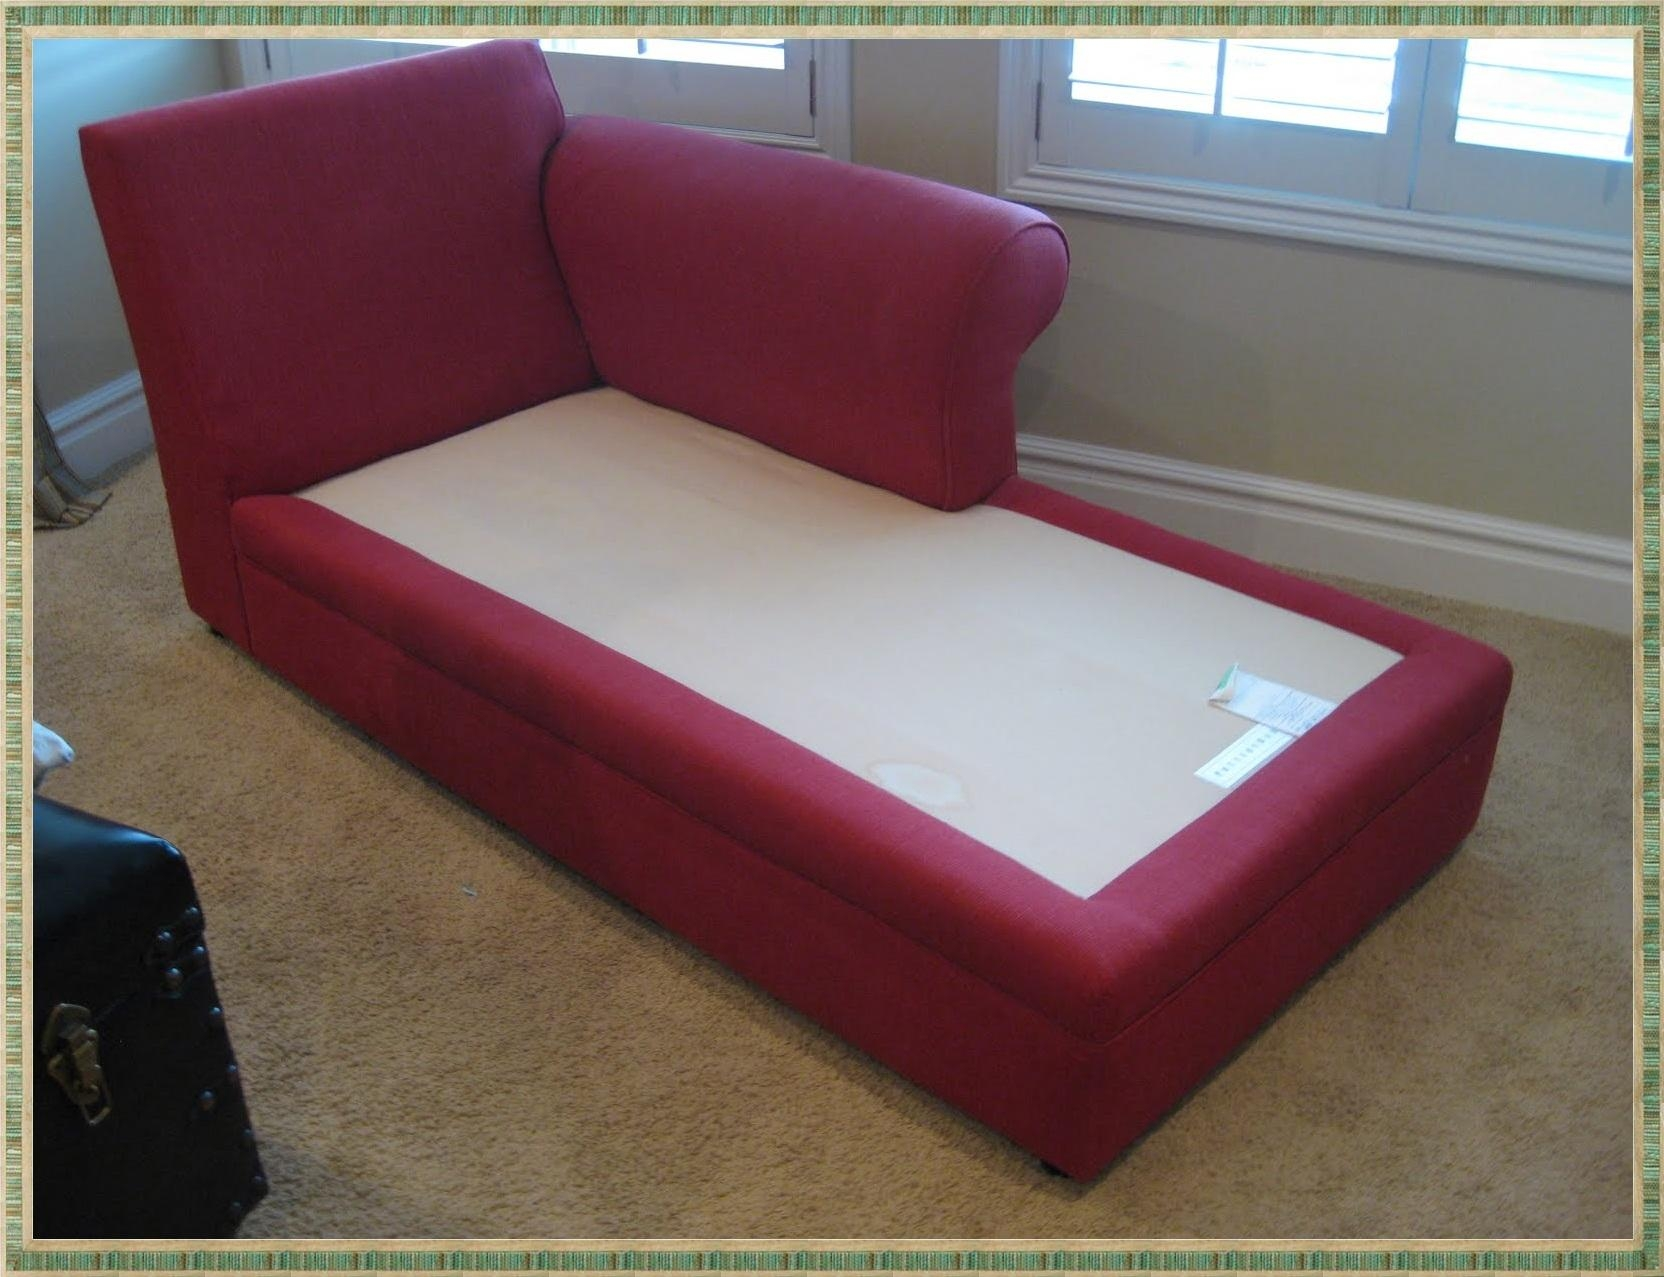 Chaise Lounge Slipcover | Home Decorations Ideas Throughout Slipcovered Chaises (Image 3 of 20)